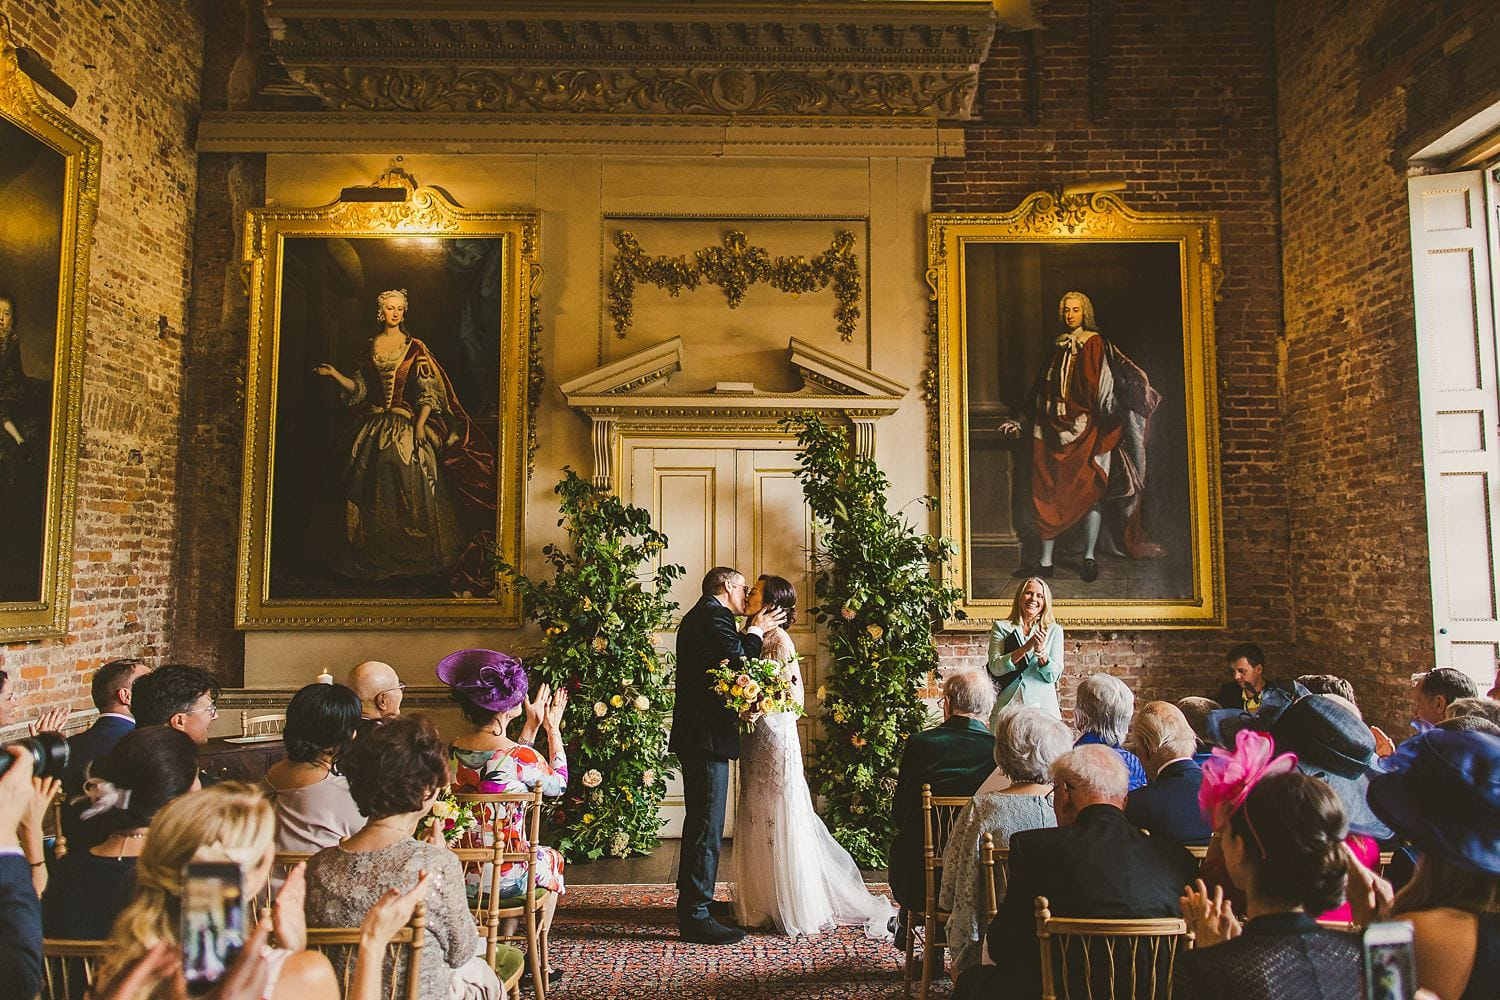 St Giles House floral arche wedding flowers